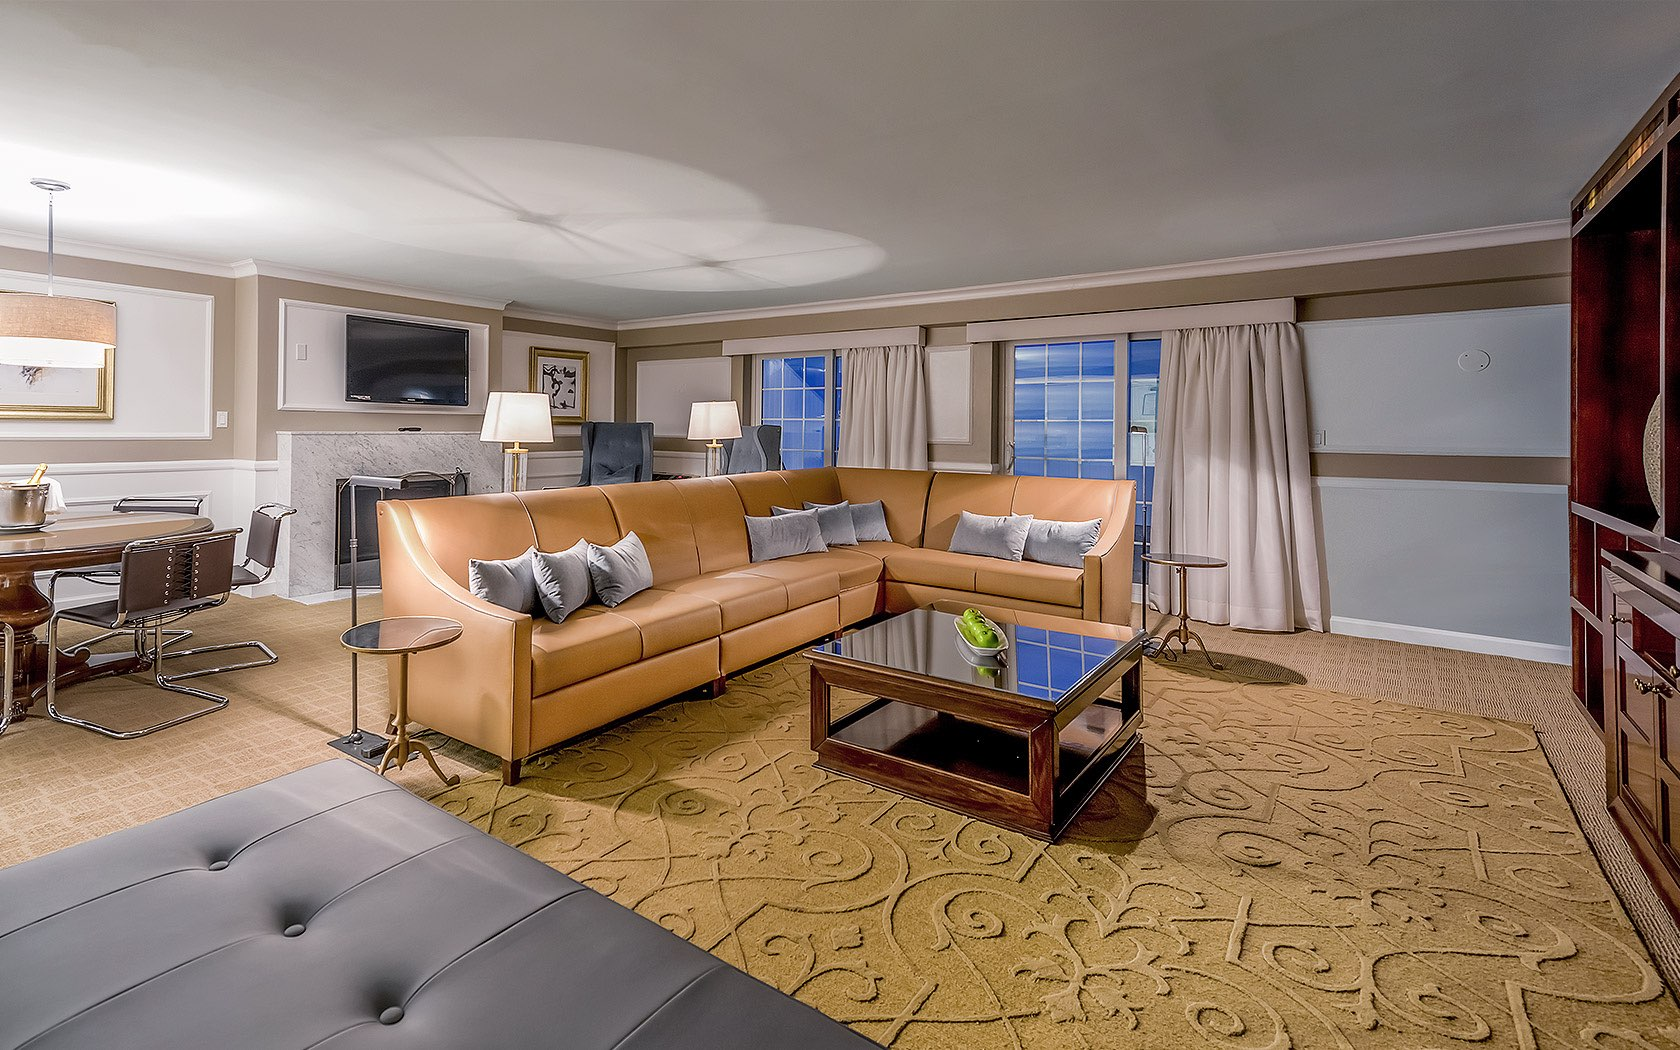 Long Island Hotels | Our New York Accommodations | Garden City